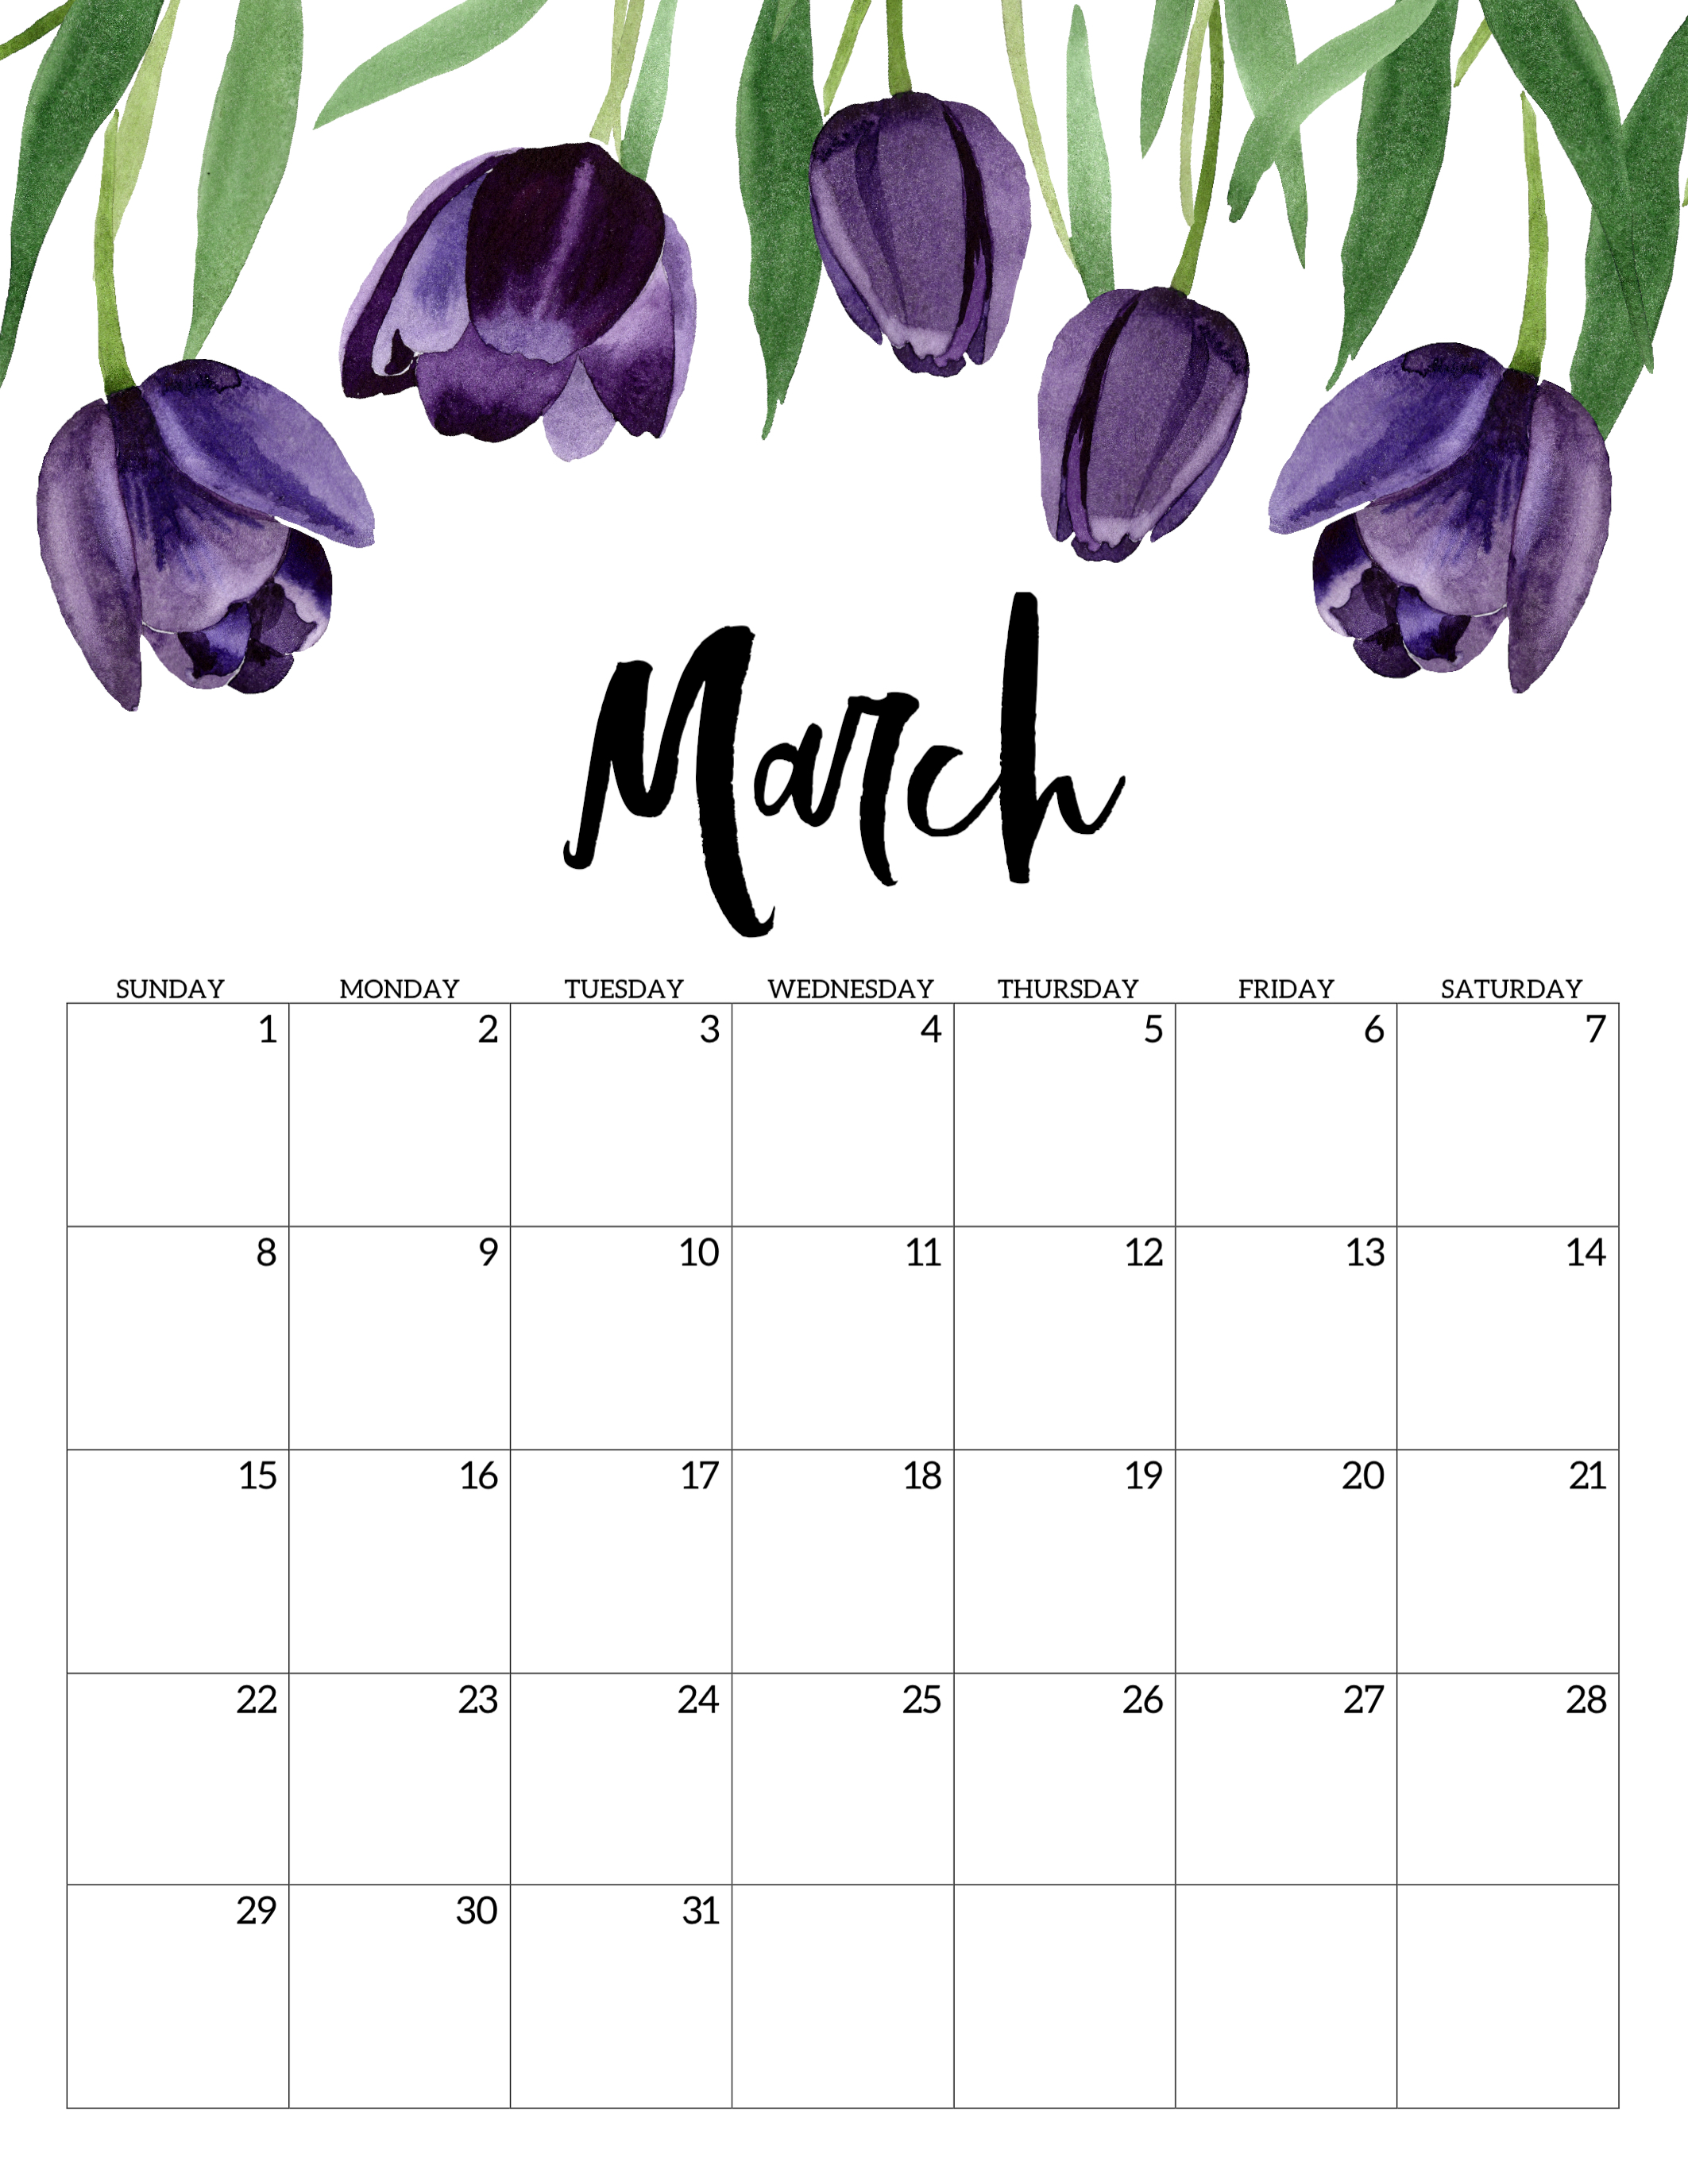 Calendar 2020 February And March.2020 Free Printable Calendar Floral Paper Trail Design